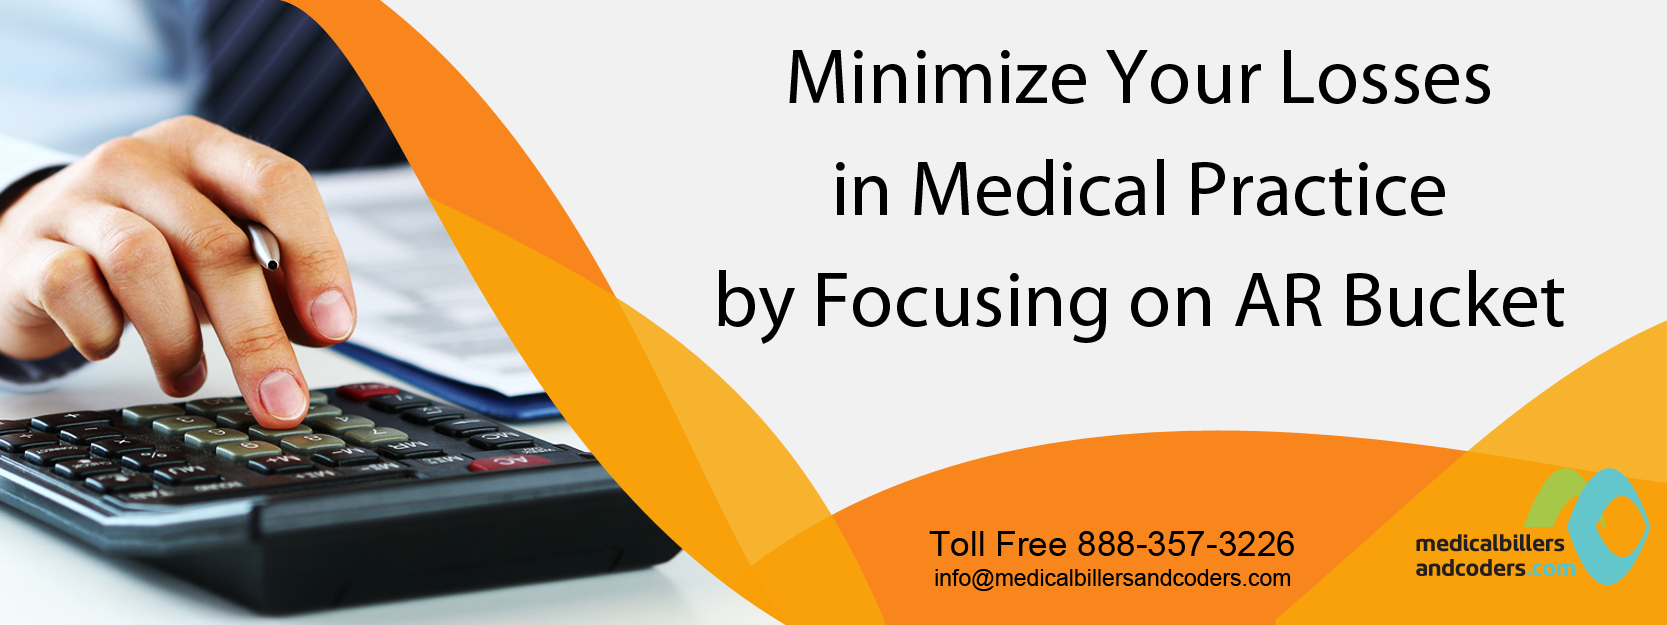 Minimize Your Losses in Medical Practice by Focusing on AR Bucket